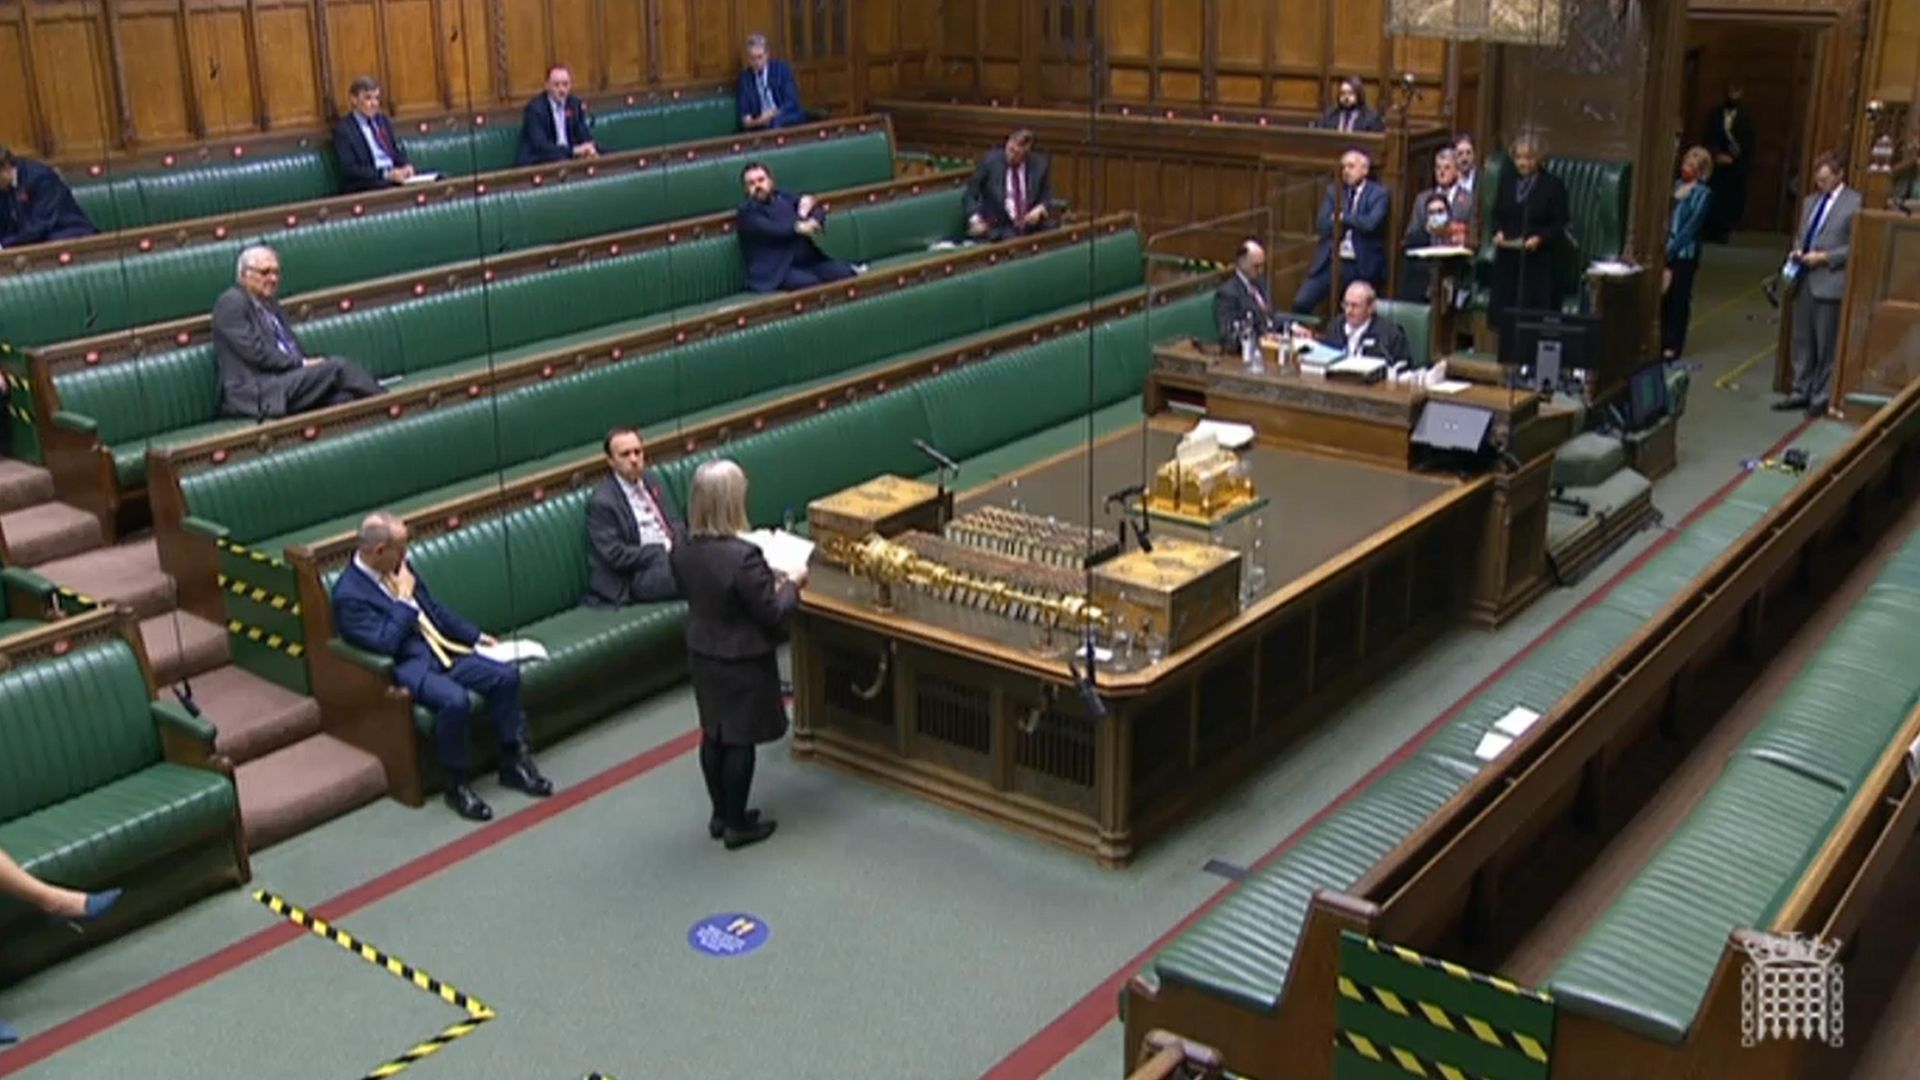 MPs voted overwhelmingly to introduce a third national lockdown in England - Credit: PA